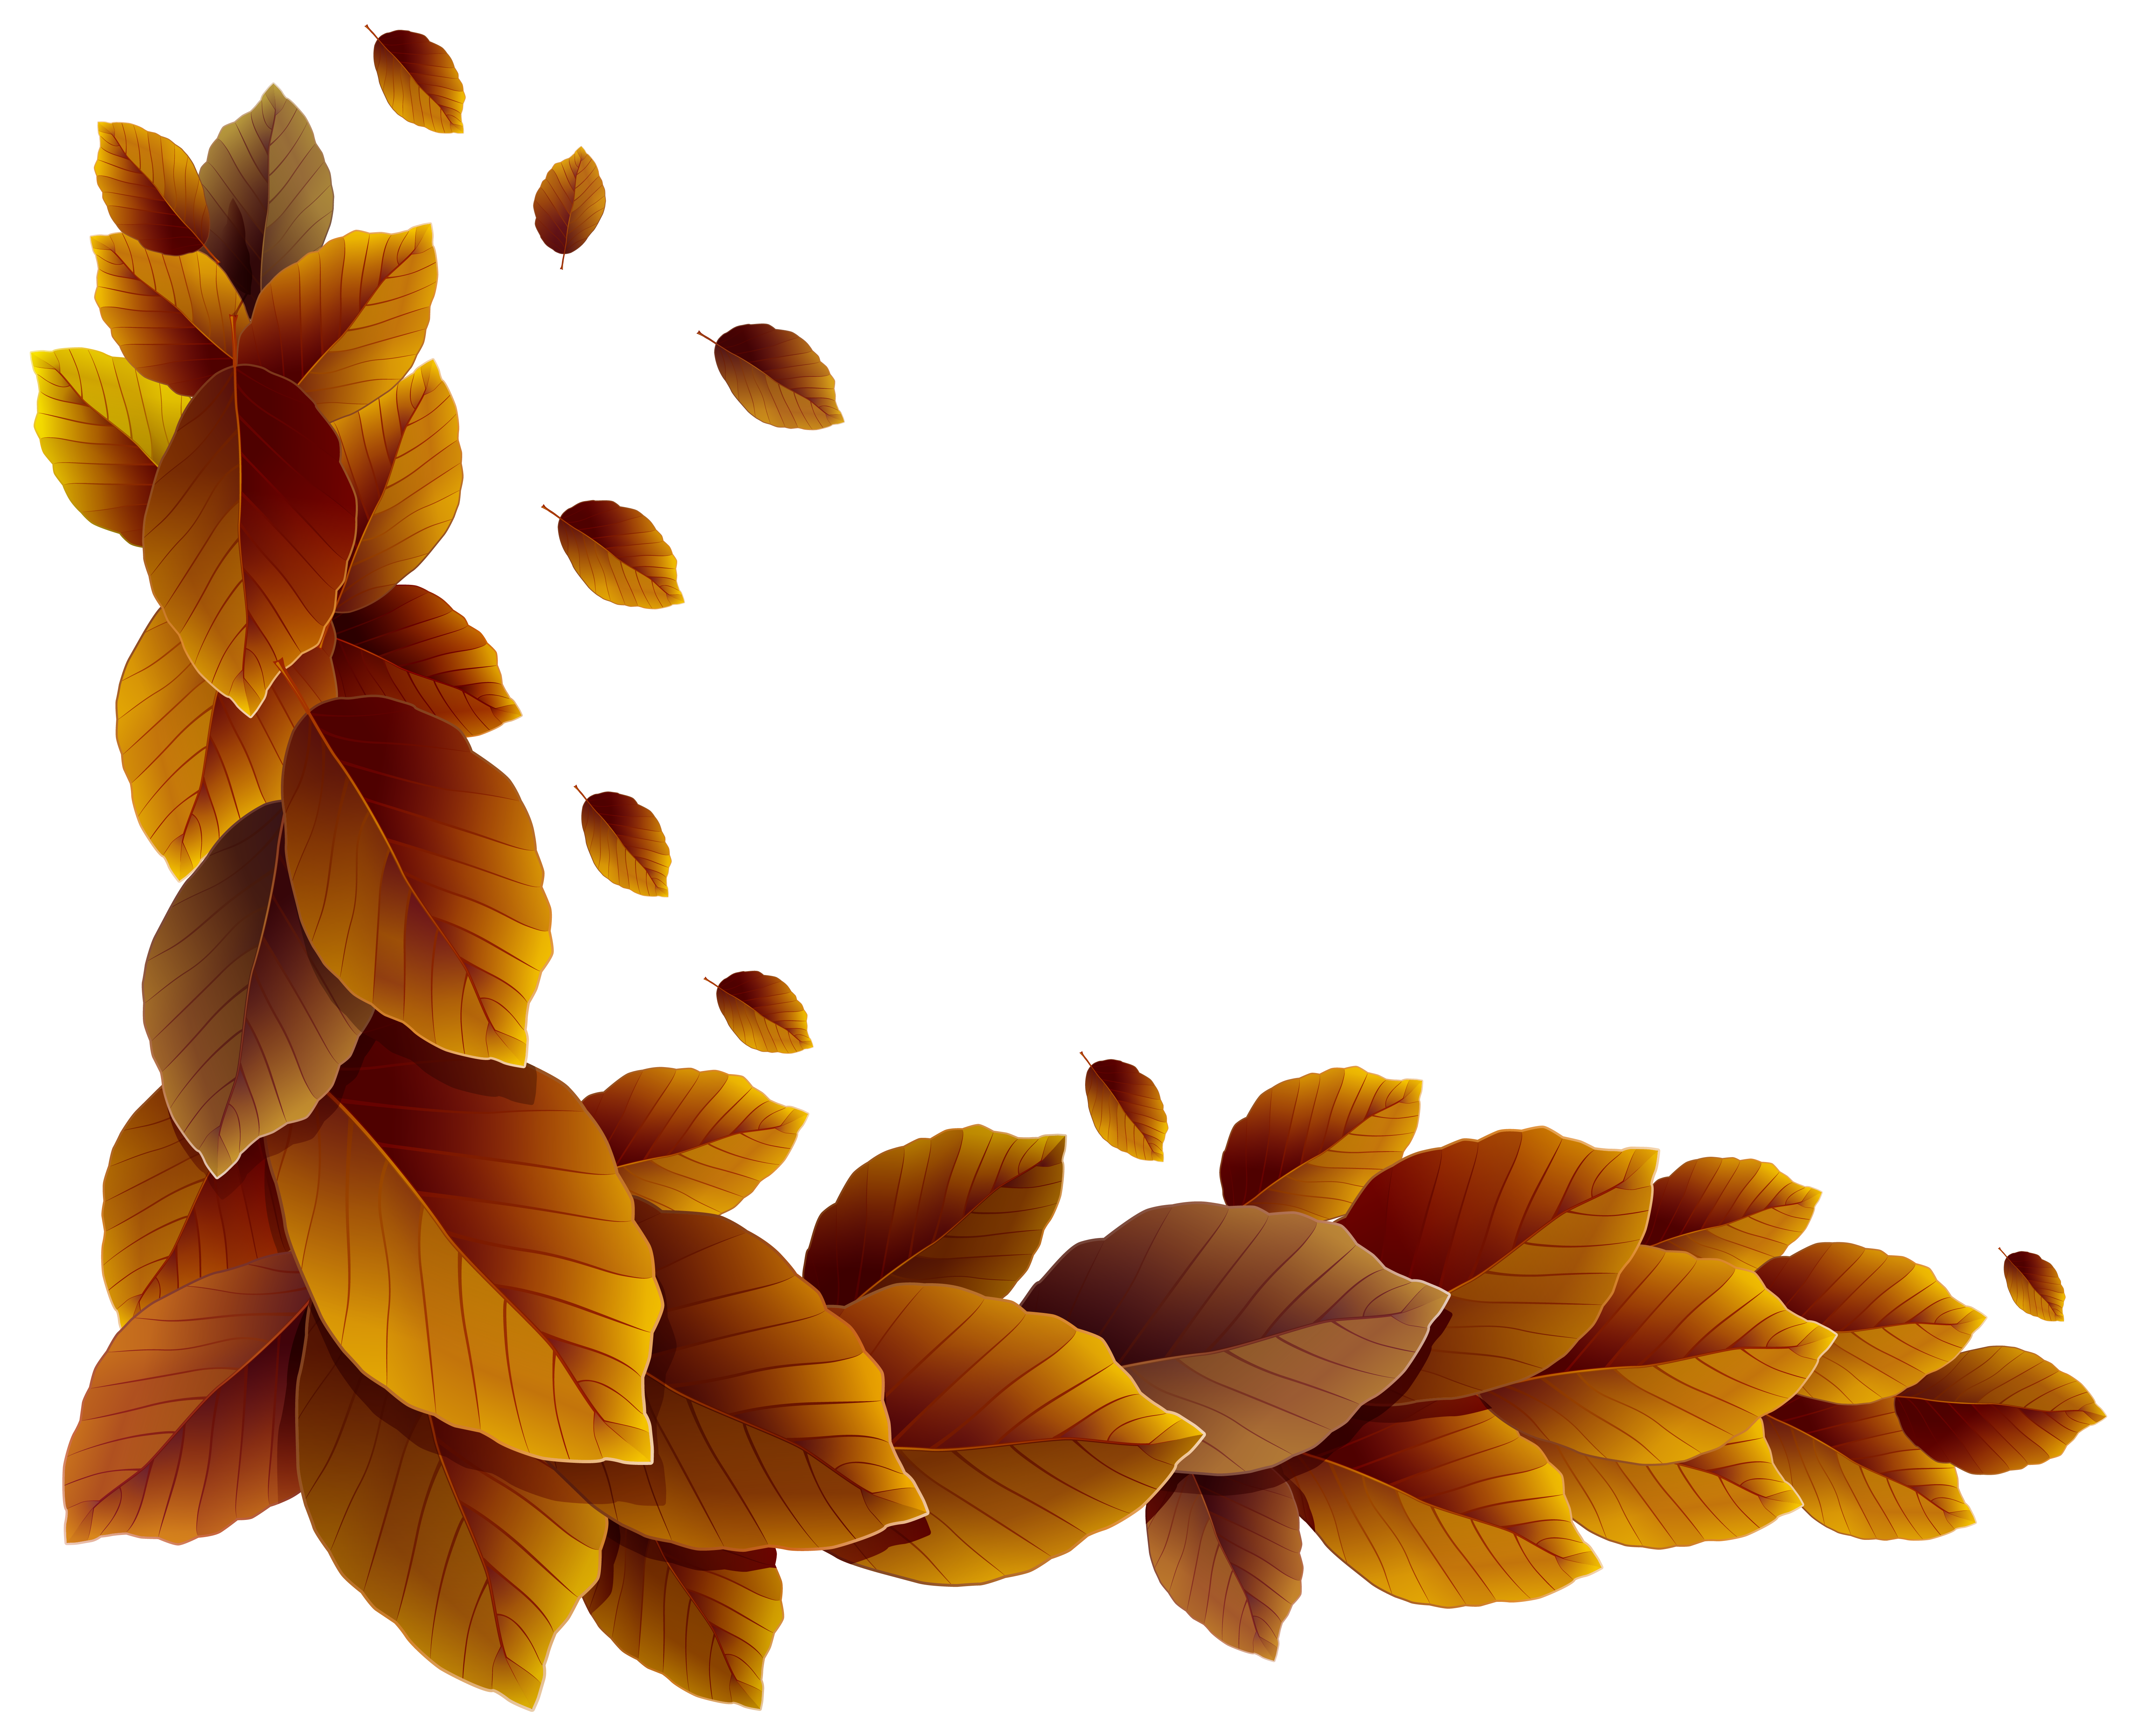 Autumn clipart corner. Fall leaves decor png